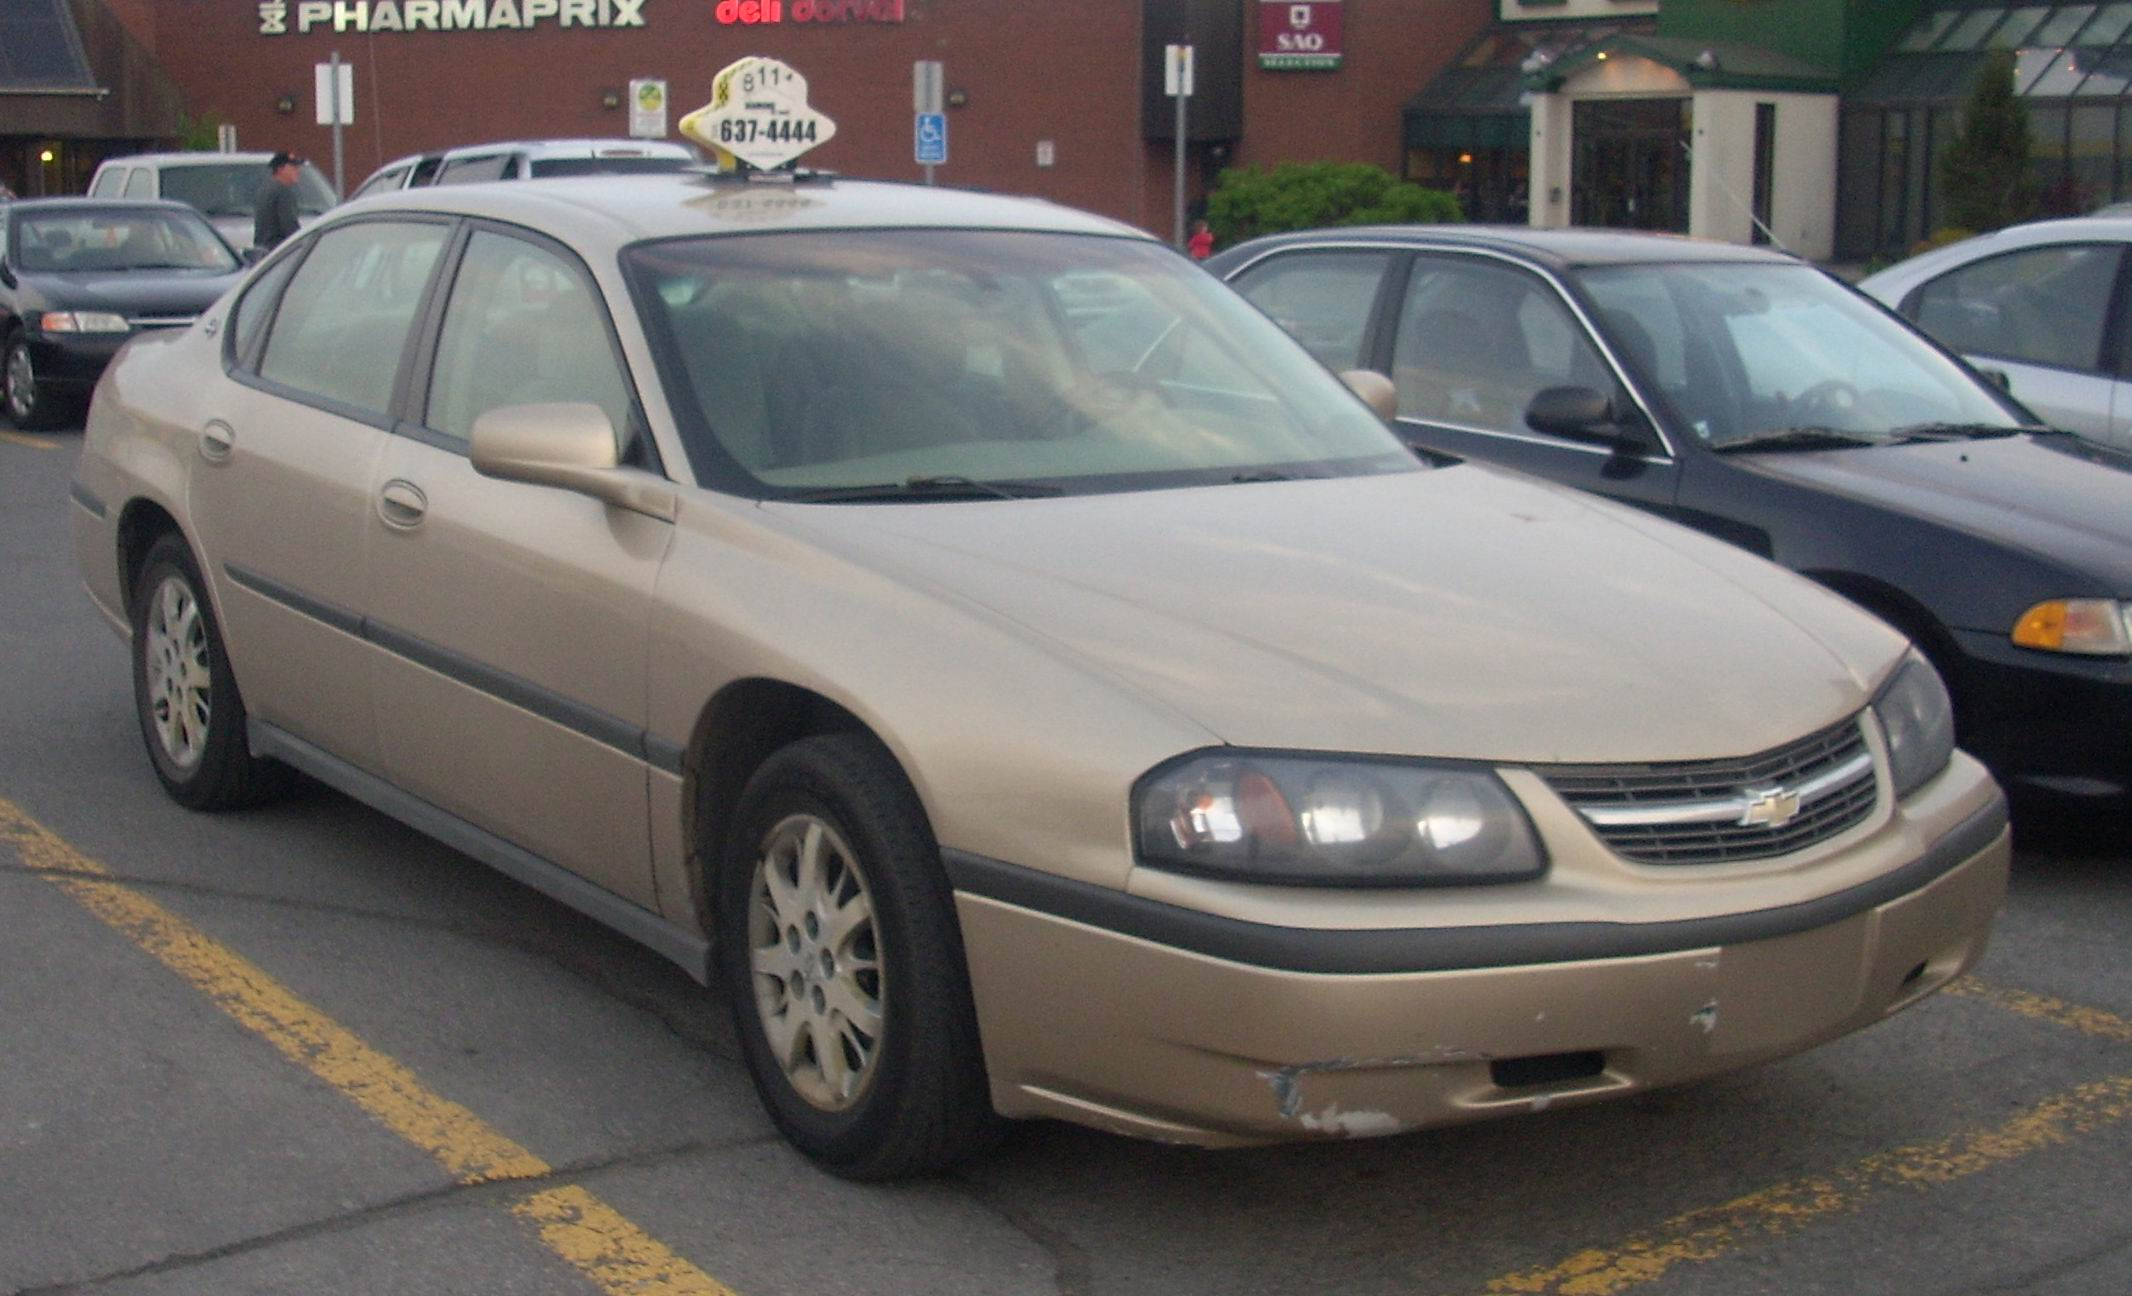 File:'03-'05 Chevrolet Impala Taxicab.JPG - Wikimedia Commons